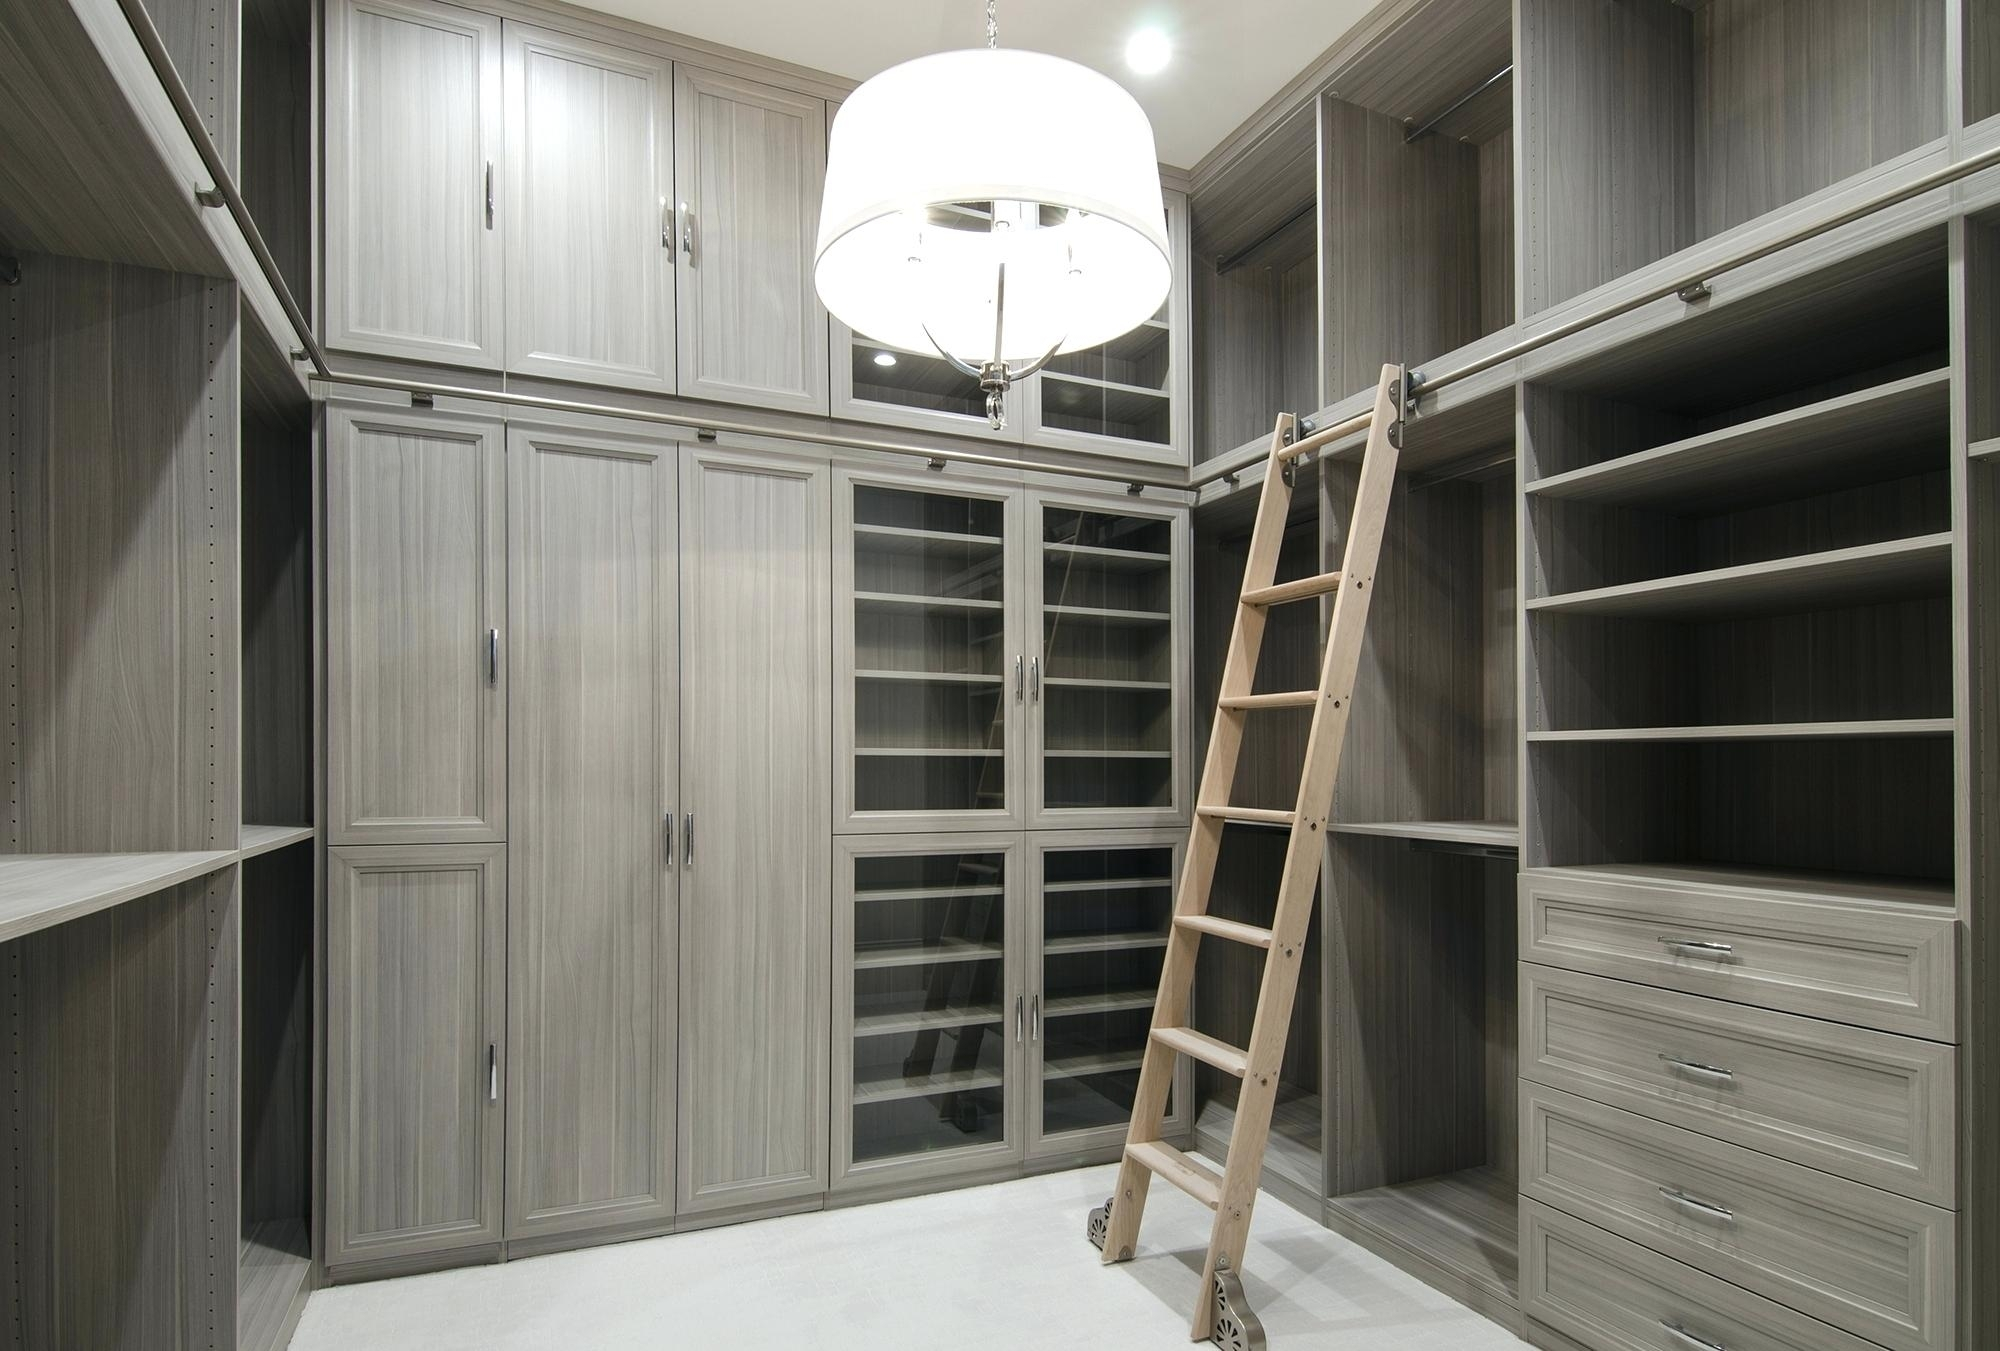 Custom Closet Design Diy & Custom Closet Design Diy \u2013 Madison Art Center Design